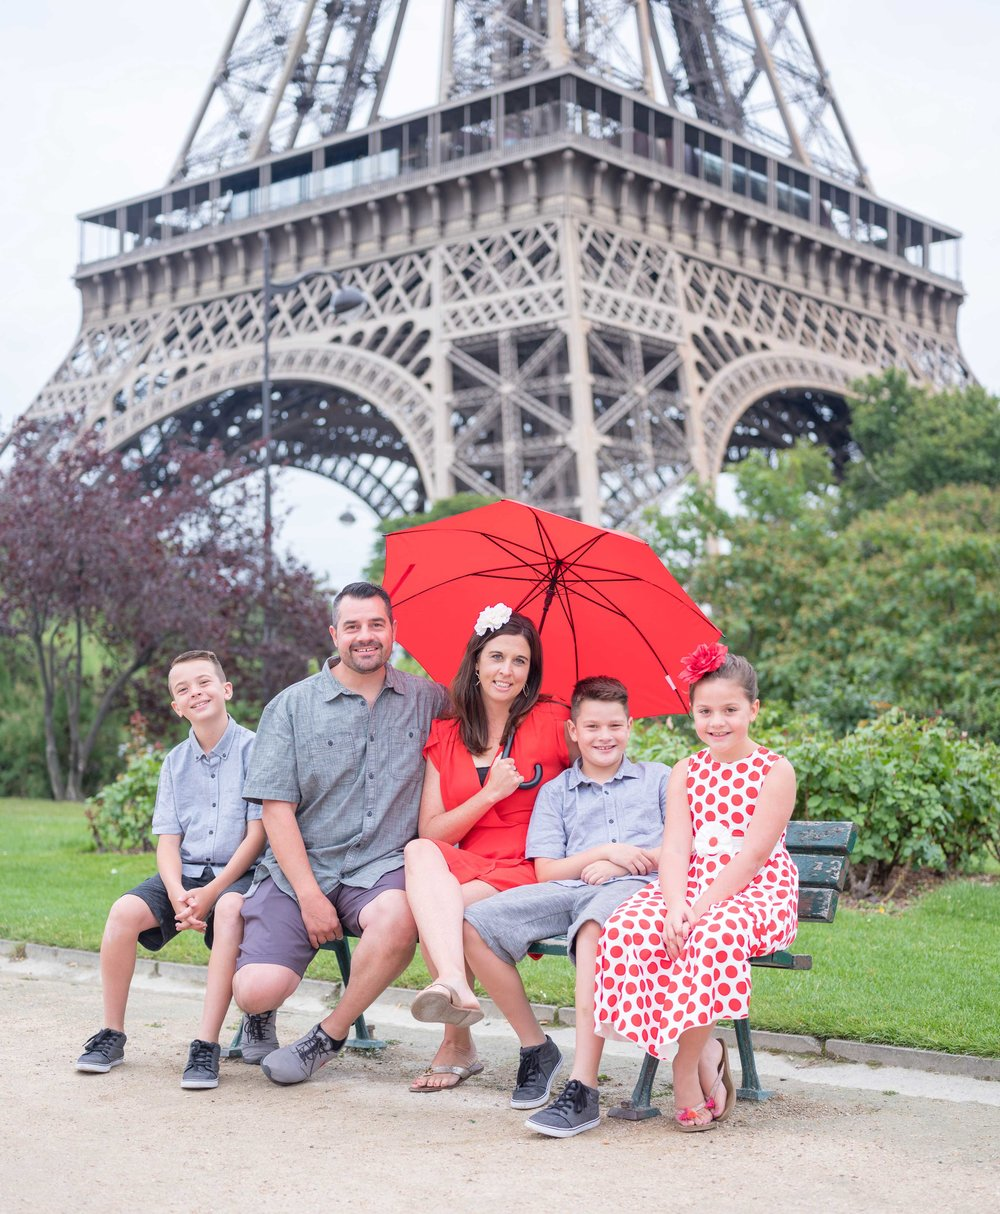 dericksen family - What a treat it was to photograph this beautiful family in Paris! Despite there being a few rain showers, their bright outfits and smiles really made my day! The love they have for each other showed in each image and it was a wonderful experience to meet them!See more images here